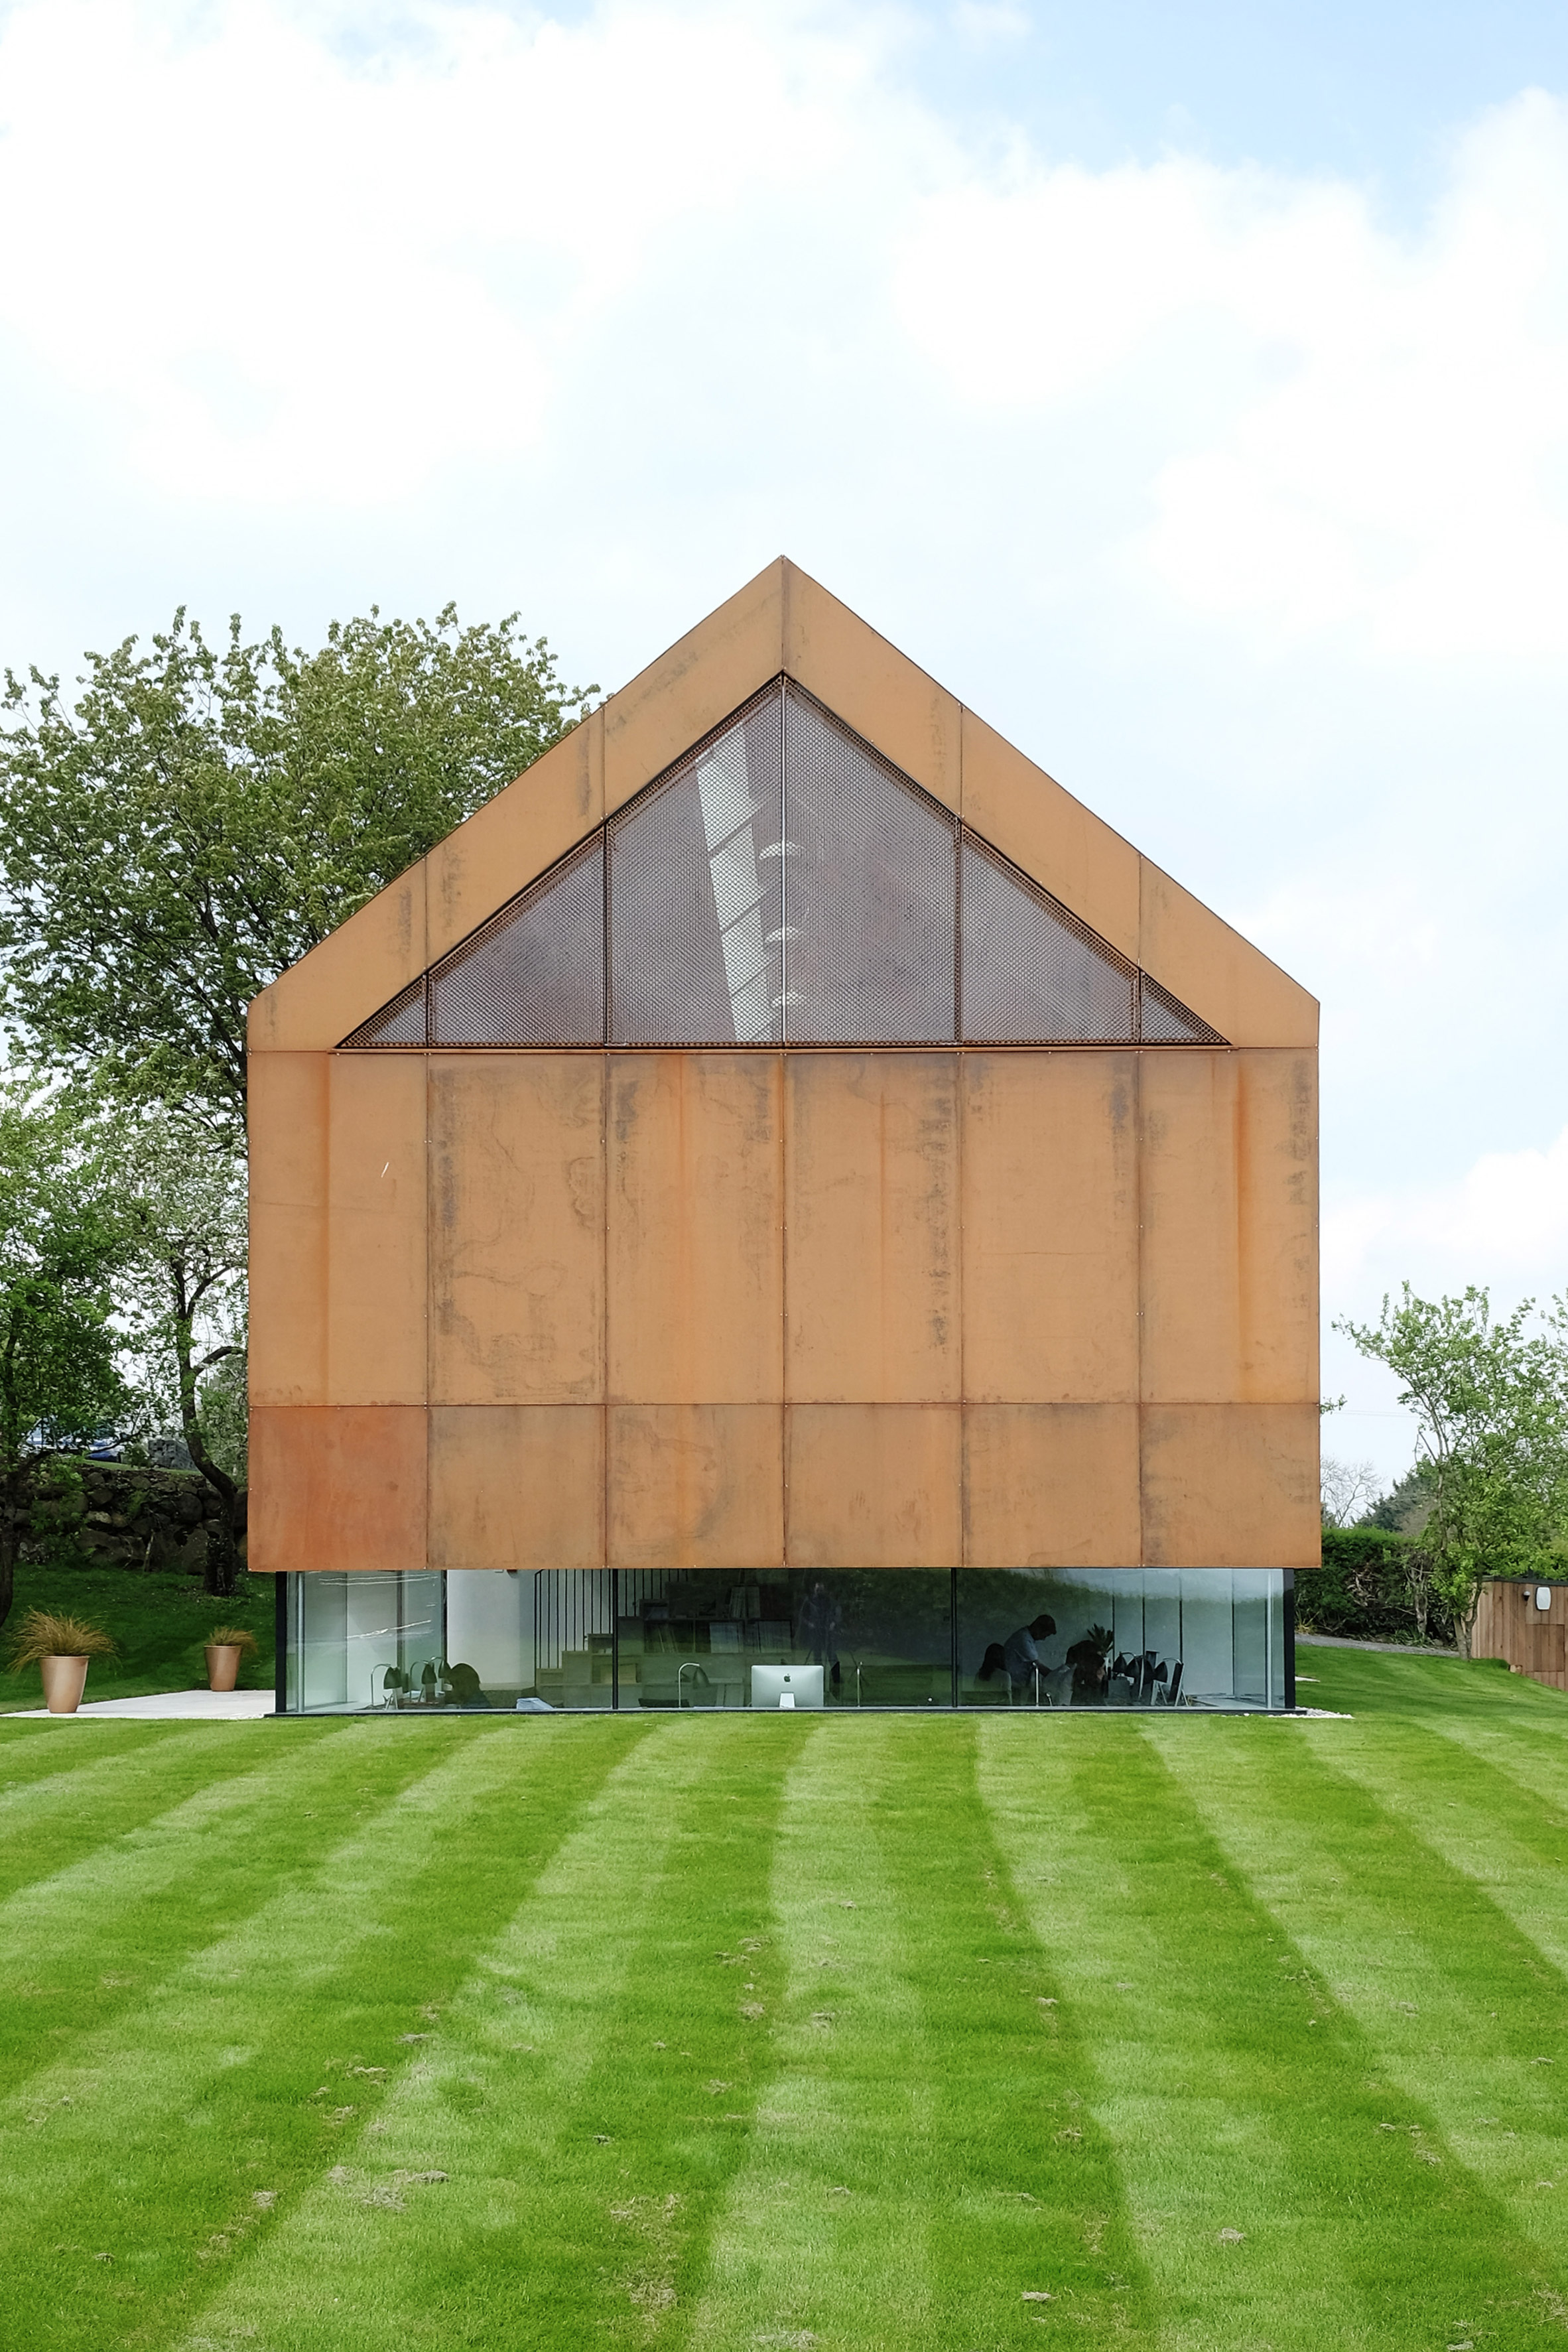 McGarry-Moon's sunken studio in Northern Ireland is topped with a rusty gabled box